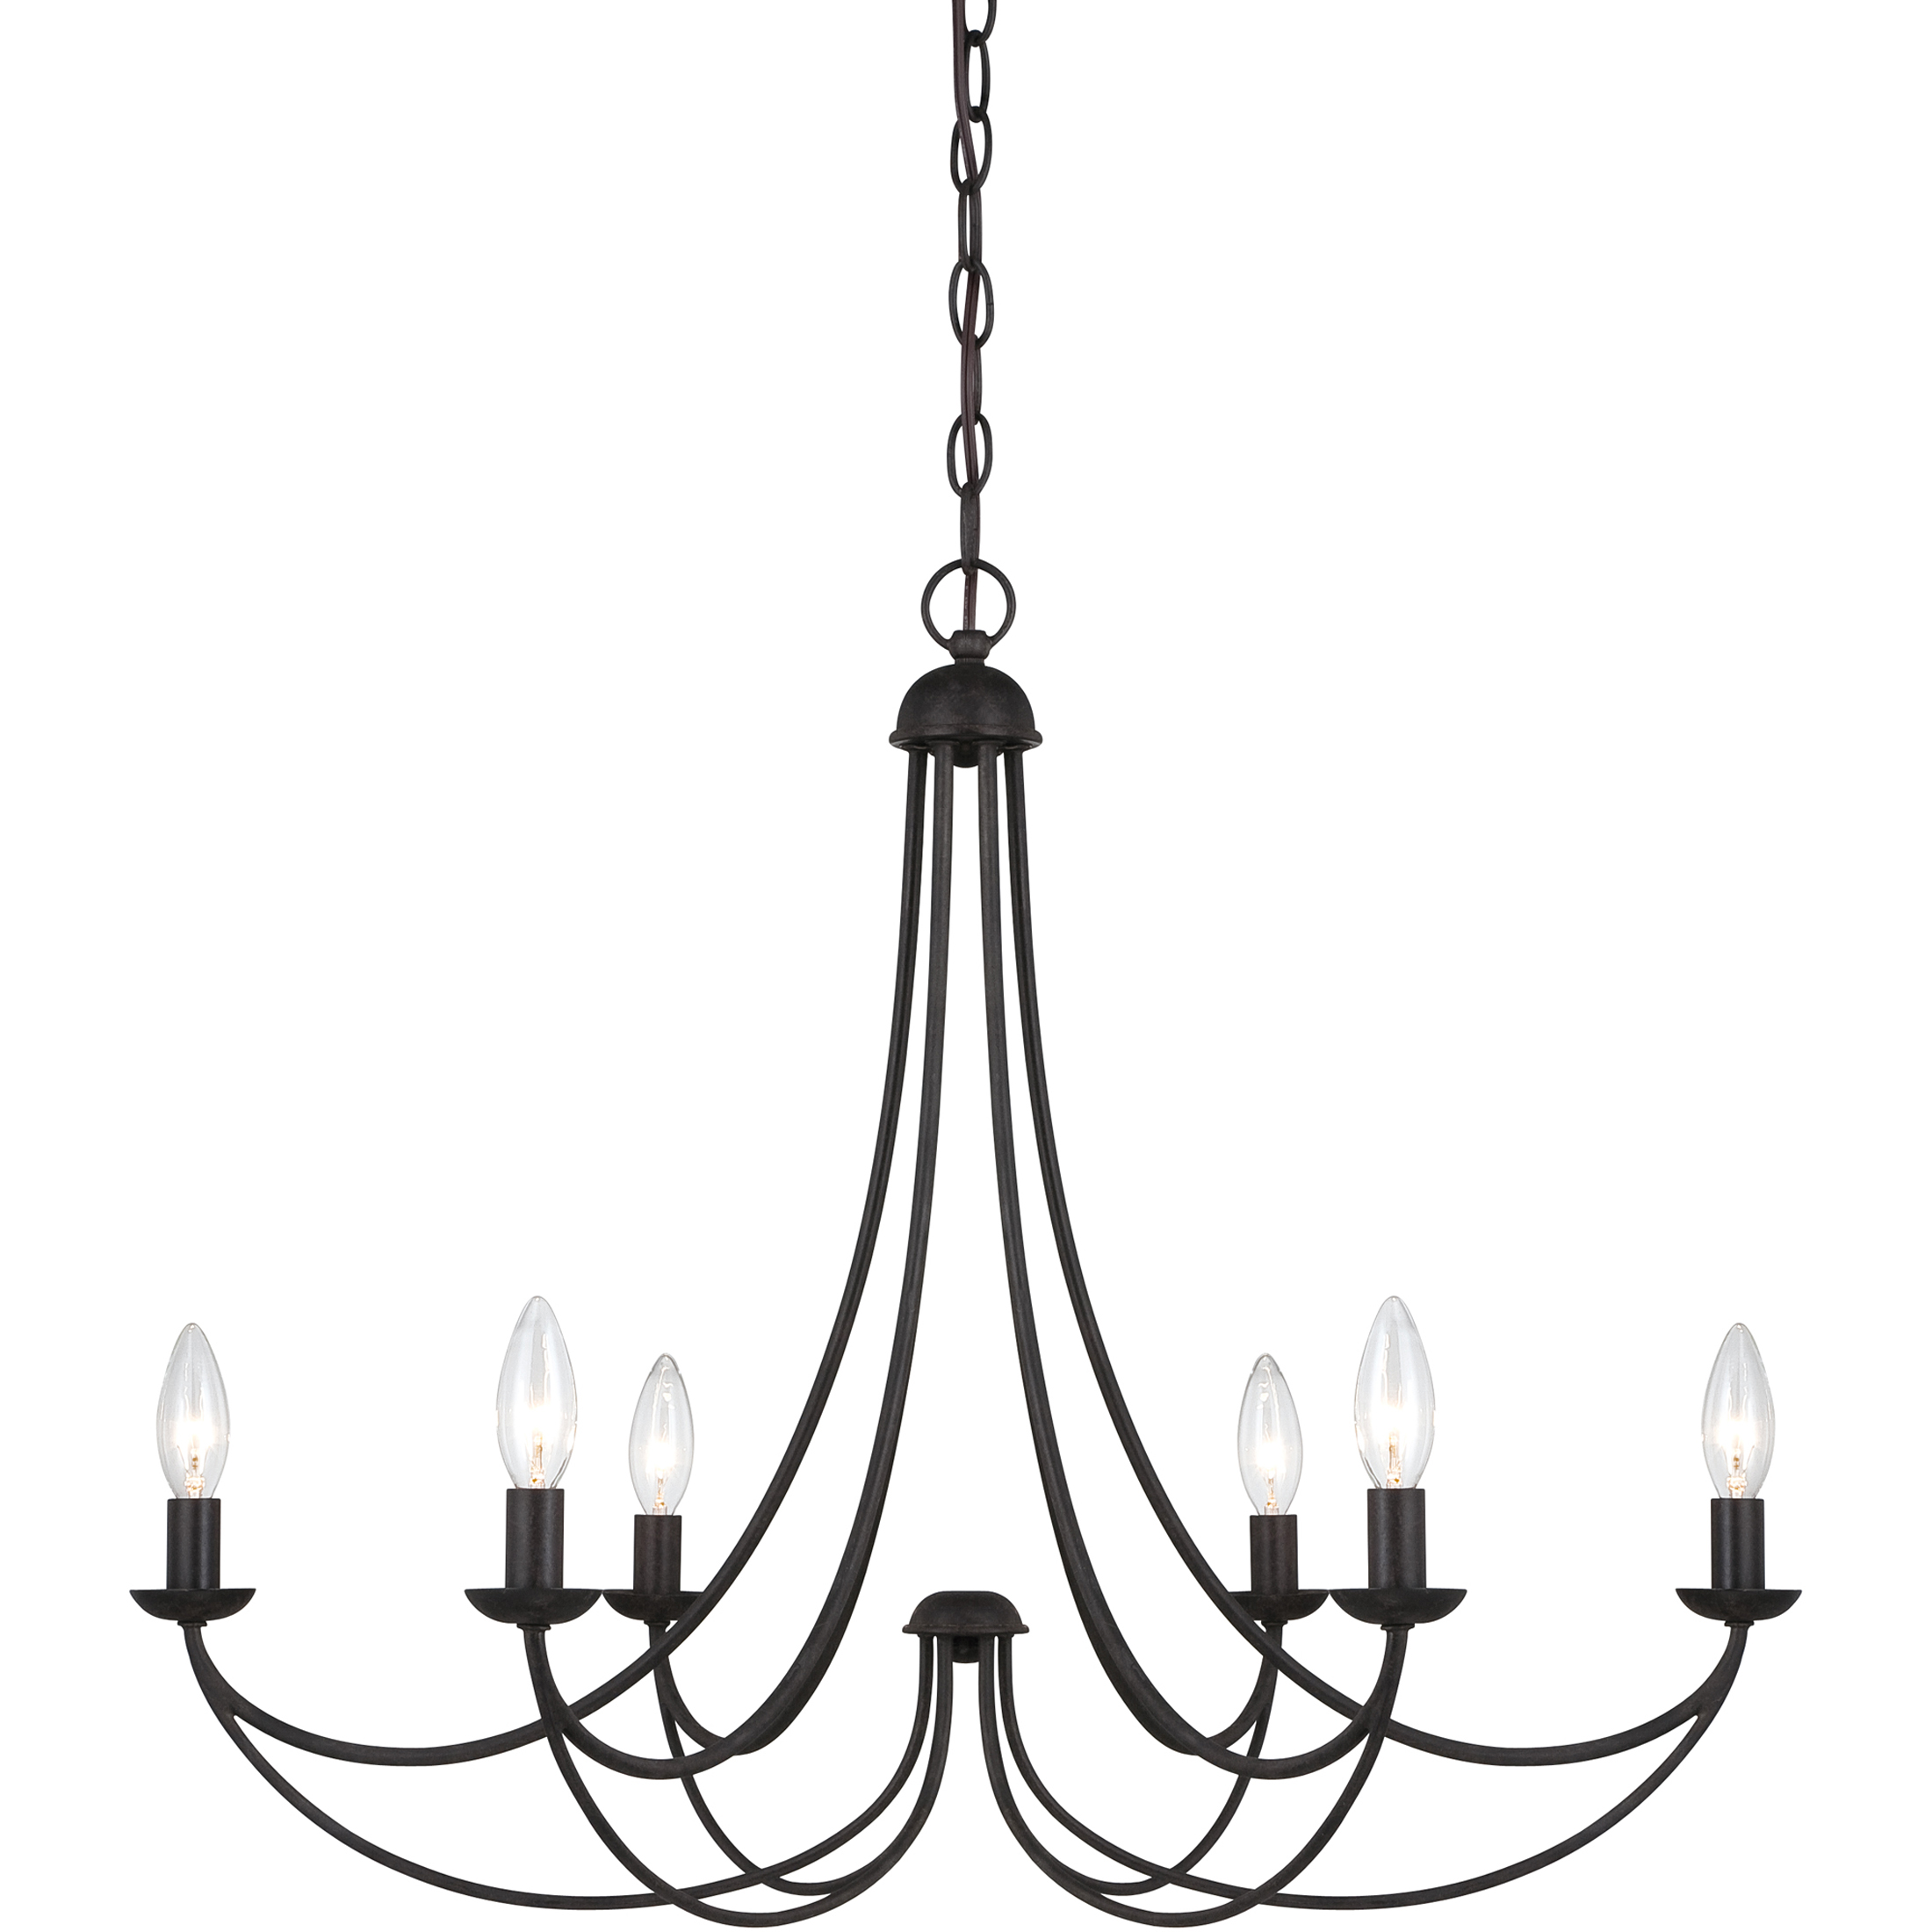 2200x2200 Chandeliers Drawing Simple For Free Download